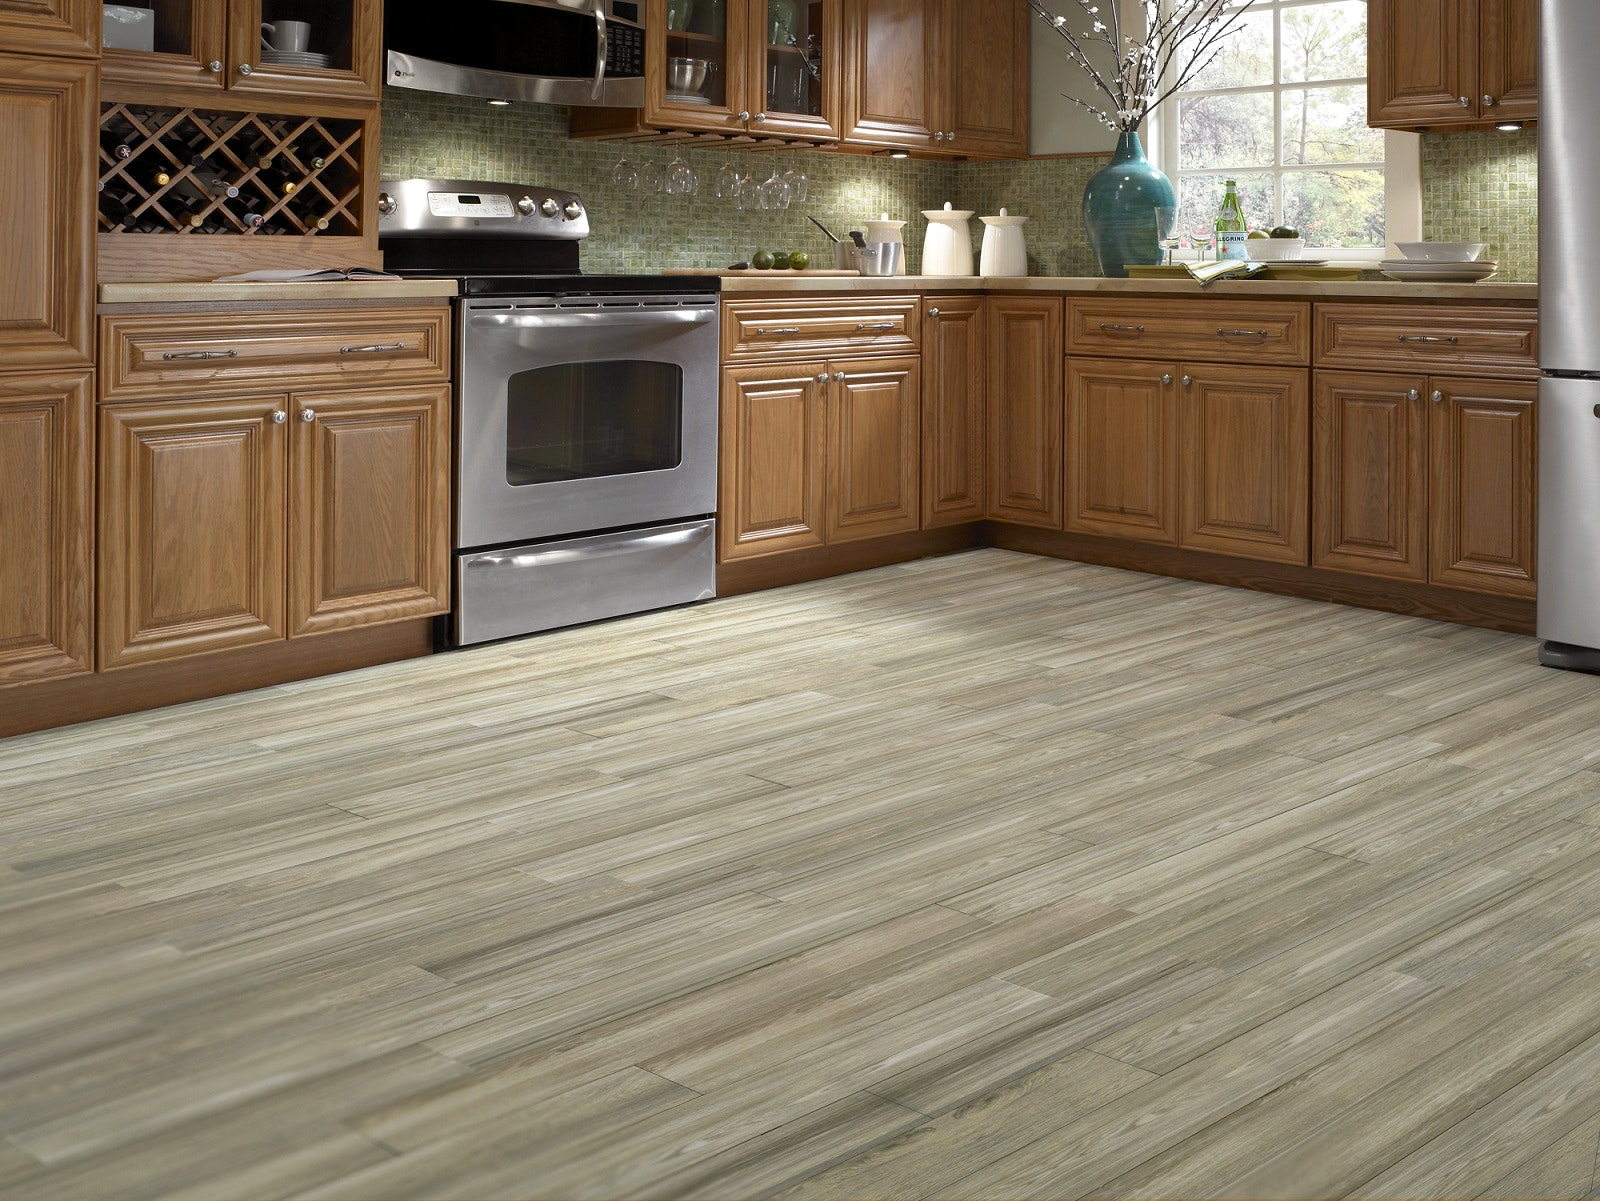 laminate ideas new full size of small kitchen ideas:floating laminate flooring the tile  pictures of UNBGQTE